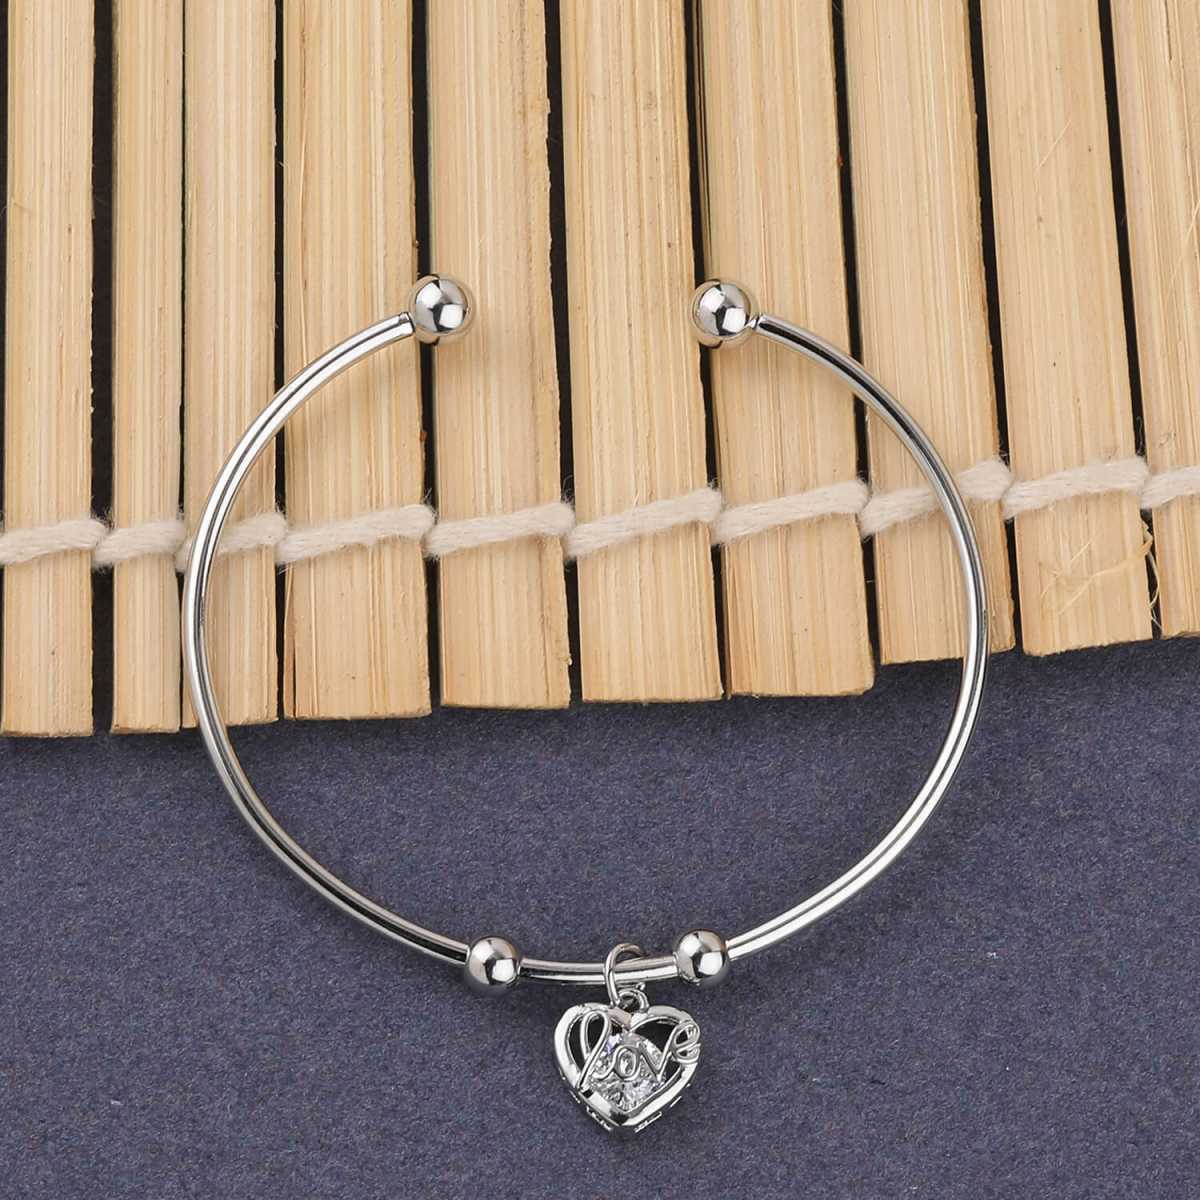 SILVER SHINE Charm Party Wear Adjustable Bracelet With Diamond For Women Girls